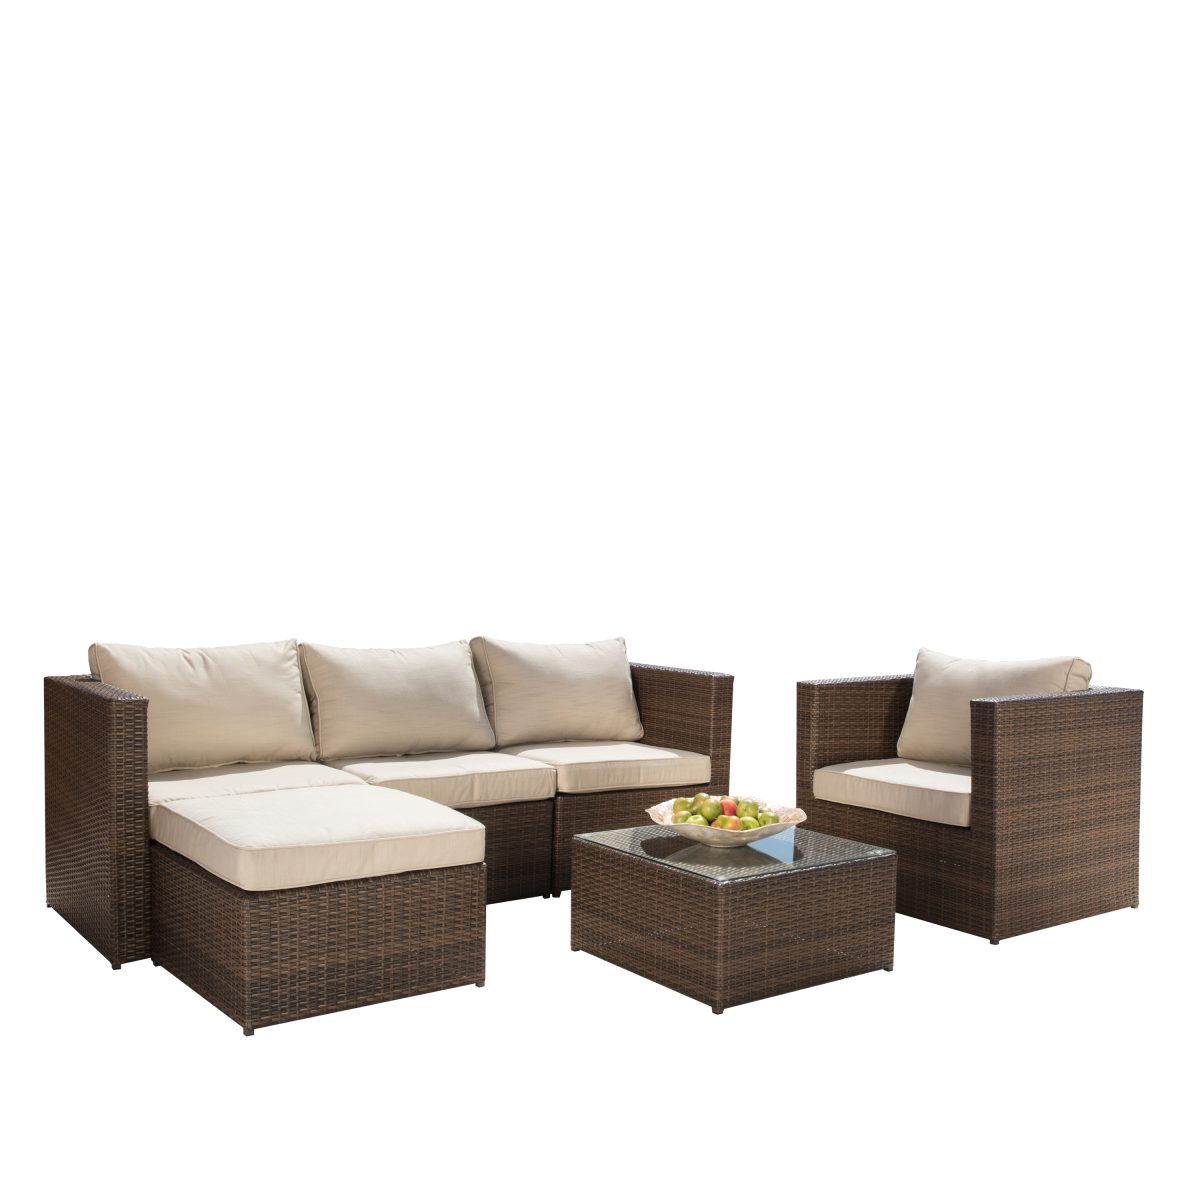 borealis trey 6 piece brown and beige resin wicker outdoor furniture